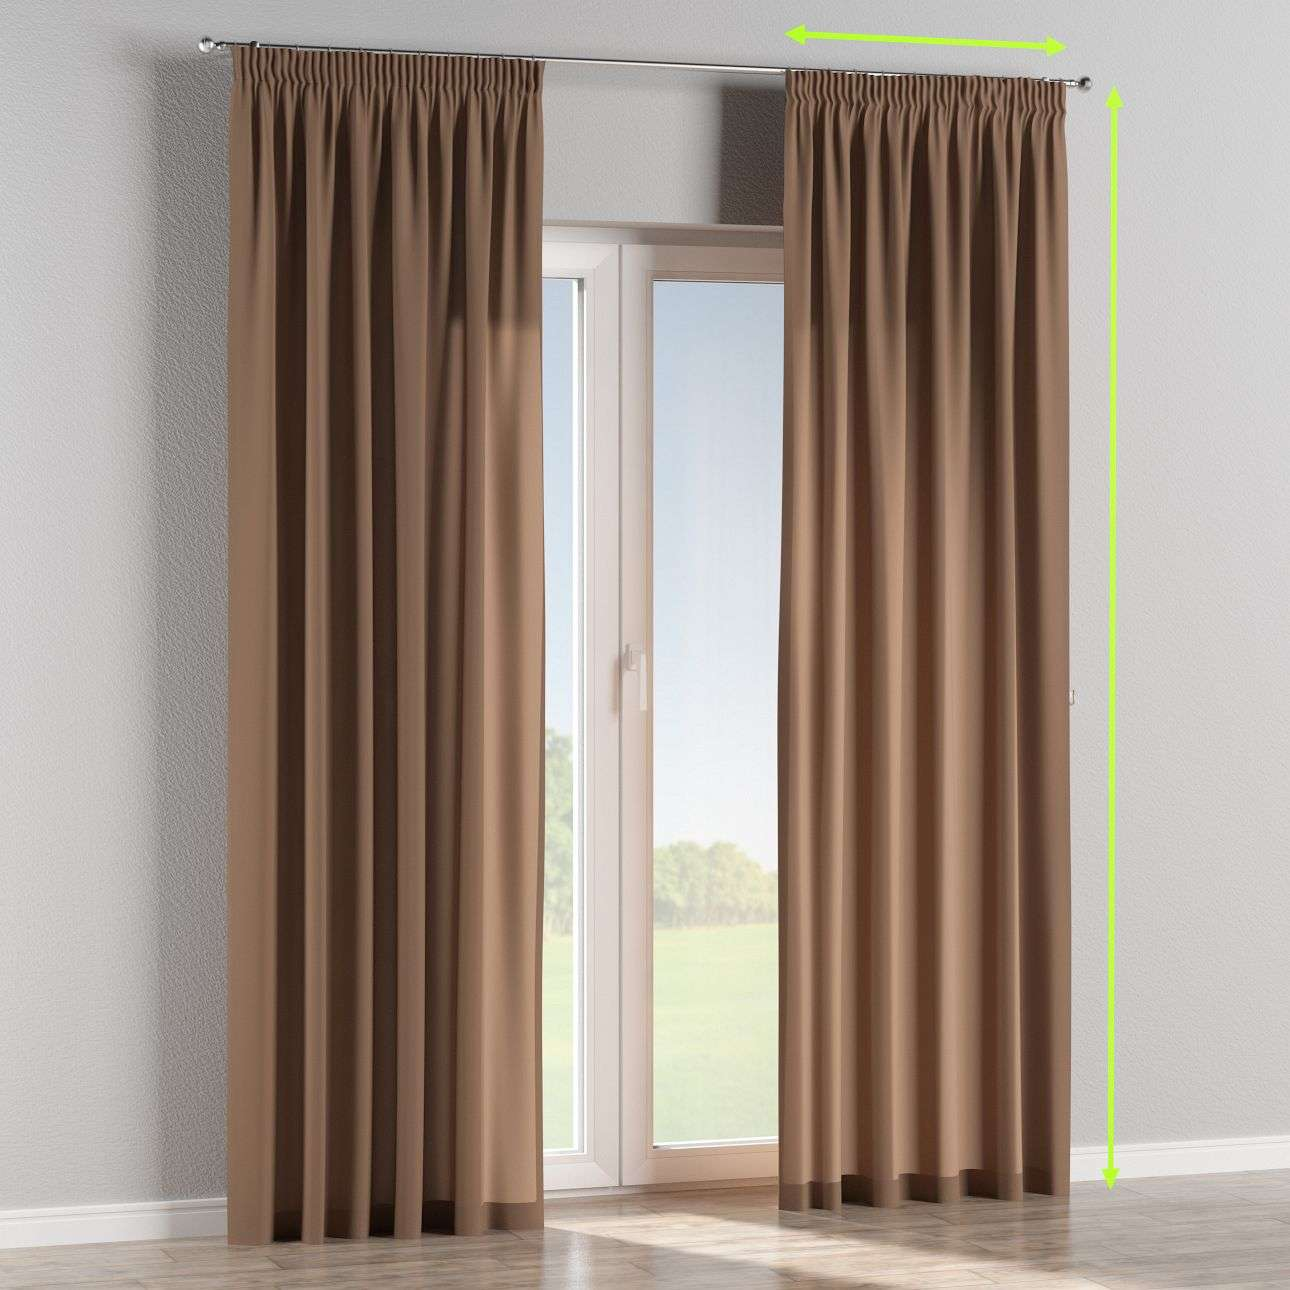 Pencil pleat curtain in collection Comics/Geometrical, fabric: 139-15